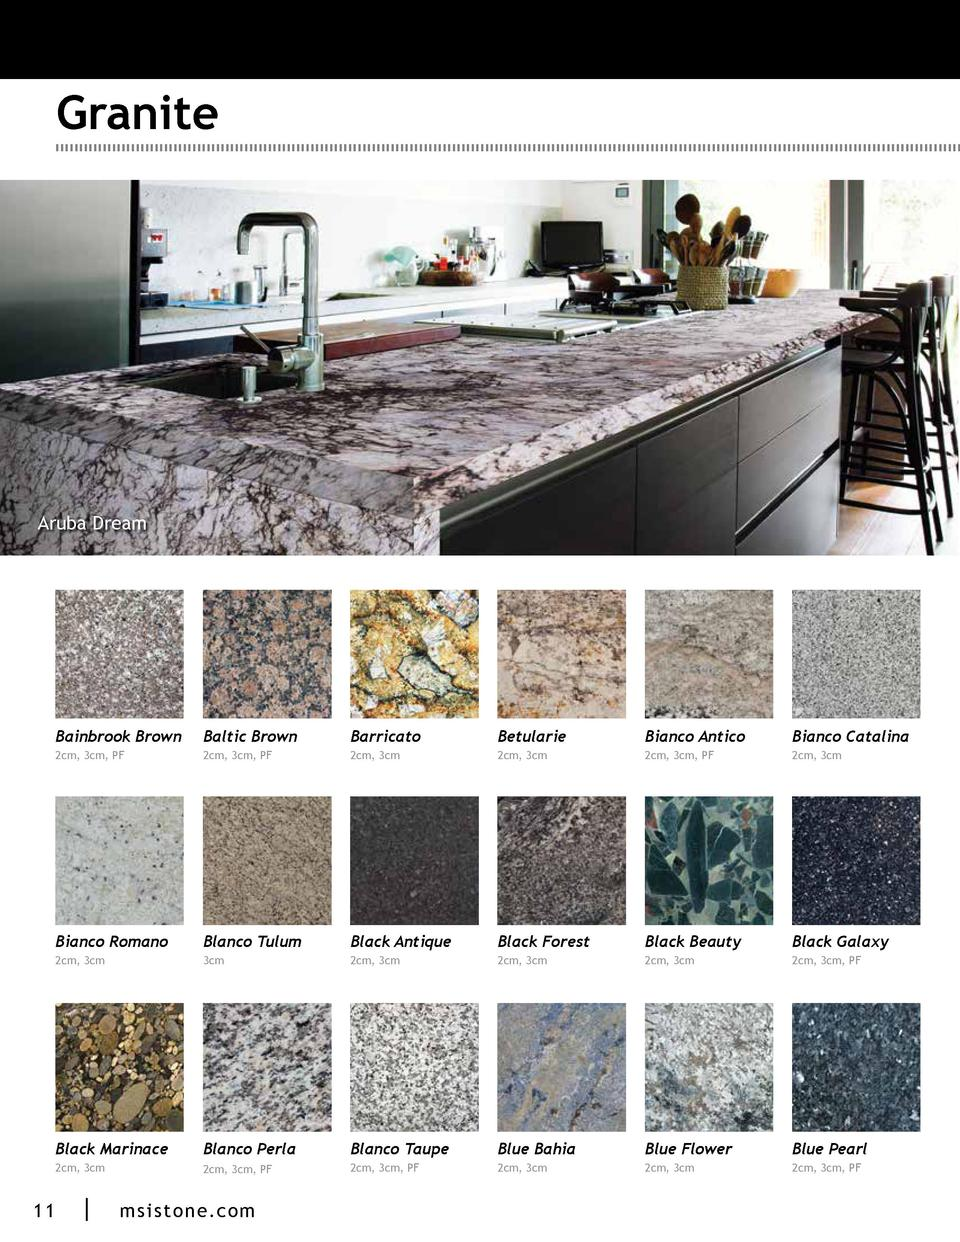 Granite Bordeaux Dream Aruba Dream Bainbrook Brown Barricato Betularie  Bianco Antico Bianco Catalina 2cm, 3cm